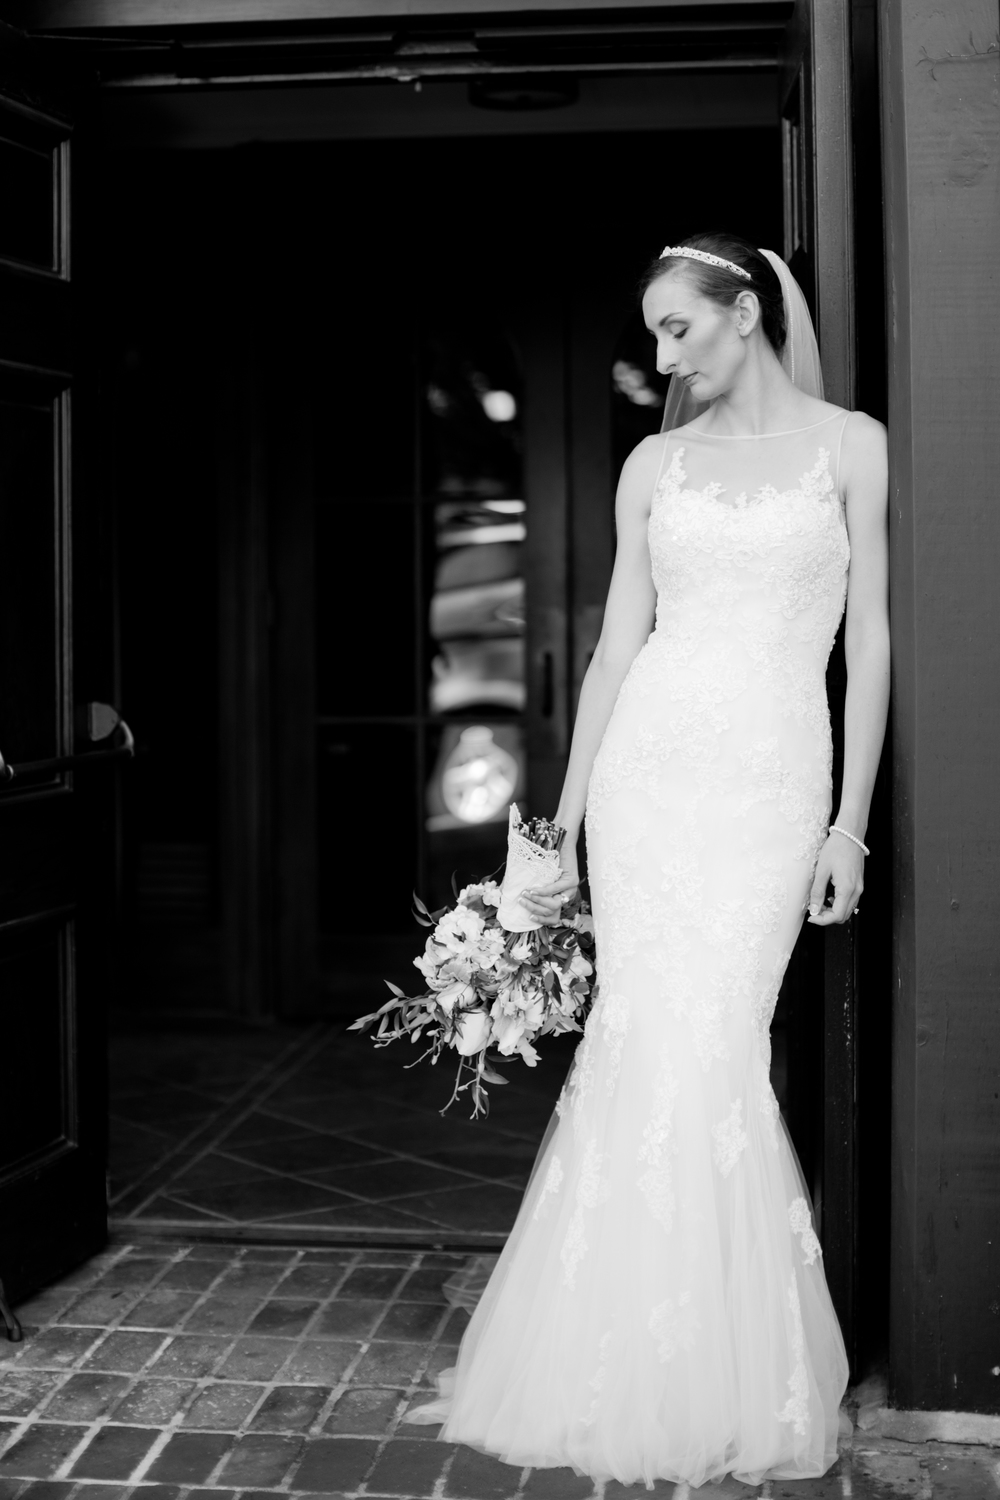 Laura & Matt - Married-439.jpg